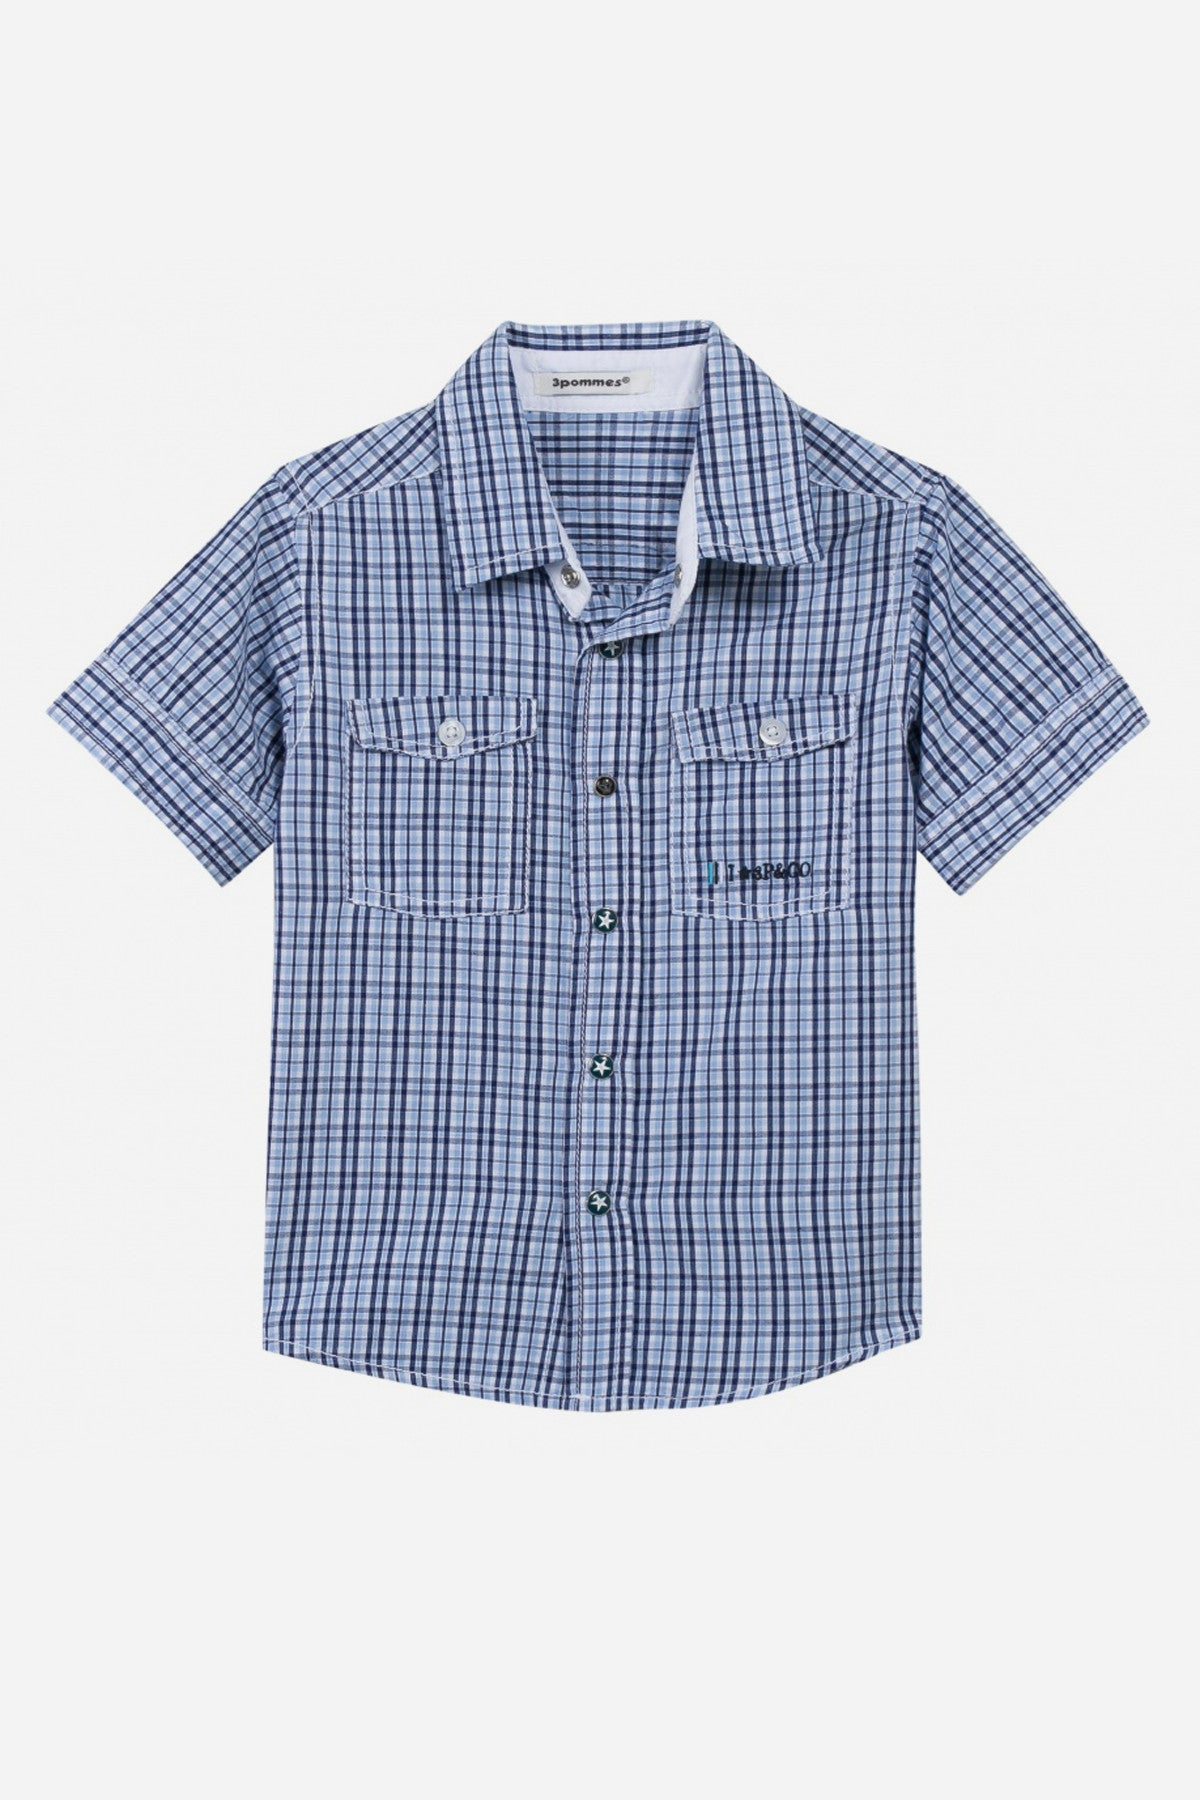 3pommes Navy Checkered Shirt